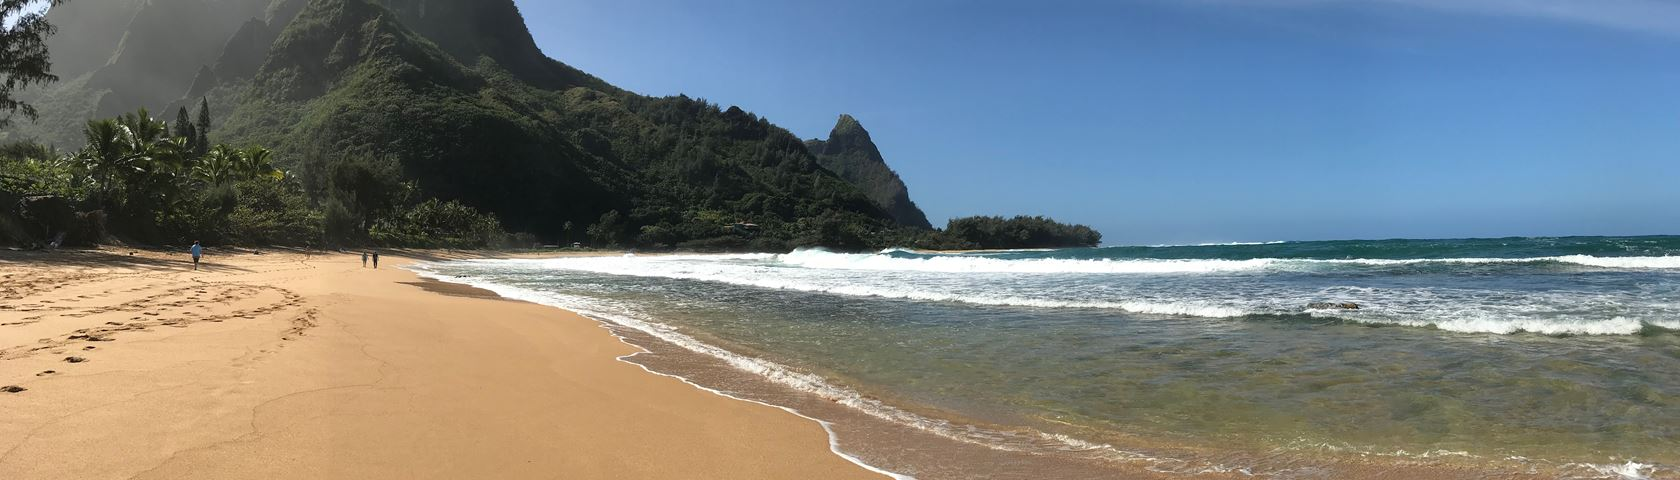 North Shore, Kauai